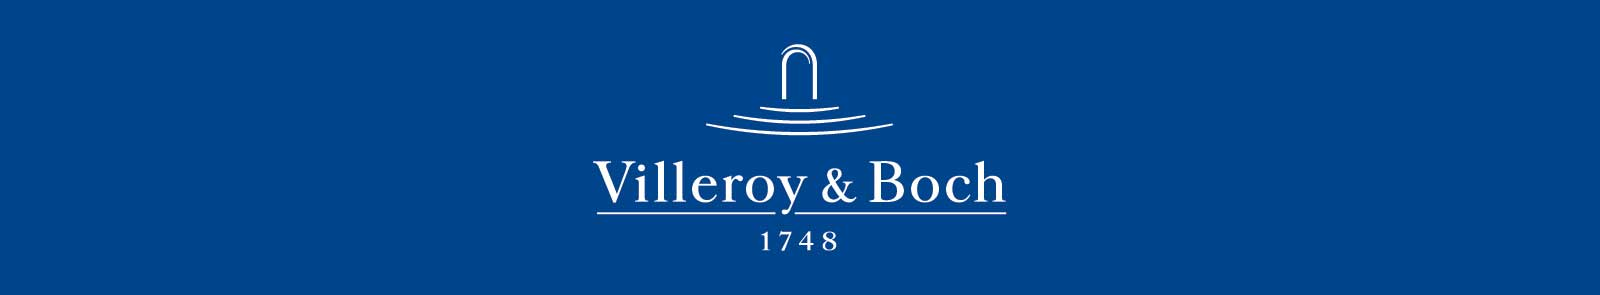 Villeroy&Boch once again rewards SACMI Gaiotto performance and reliability